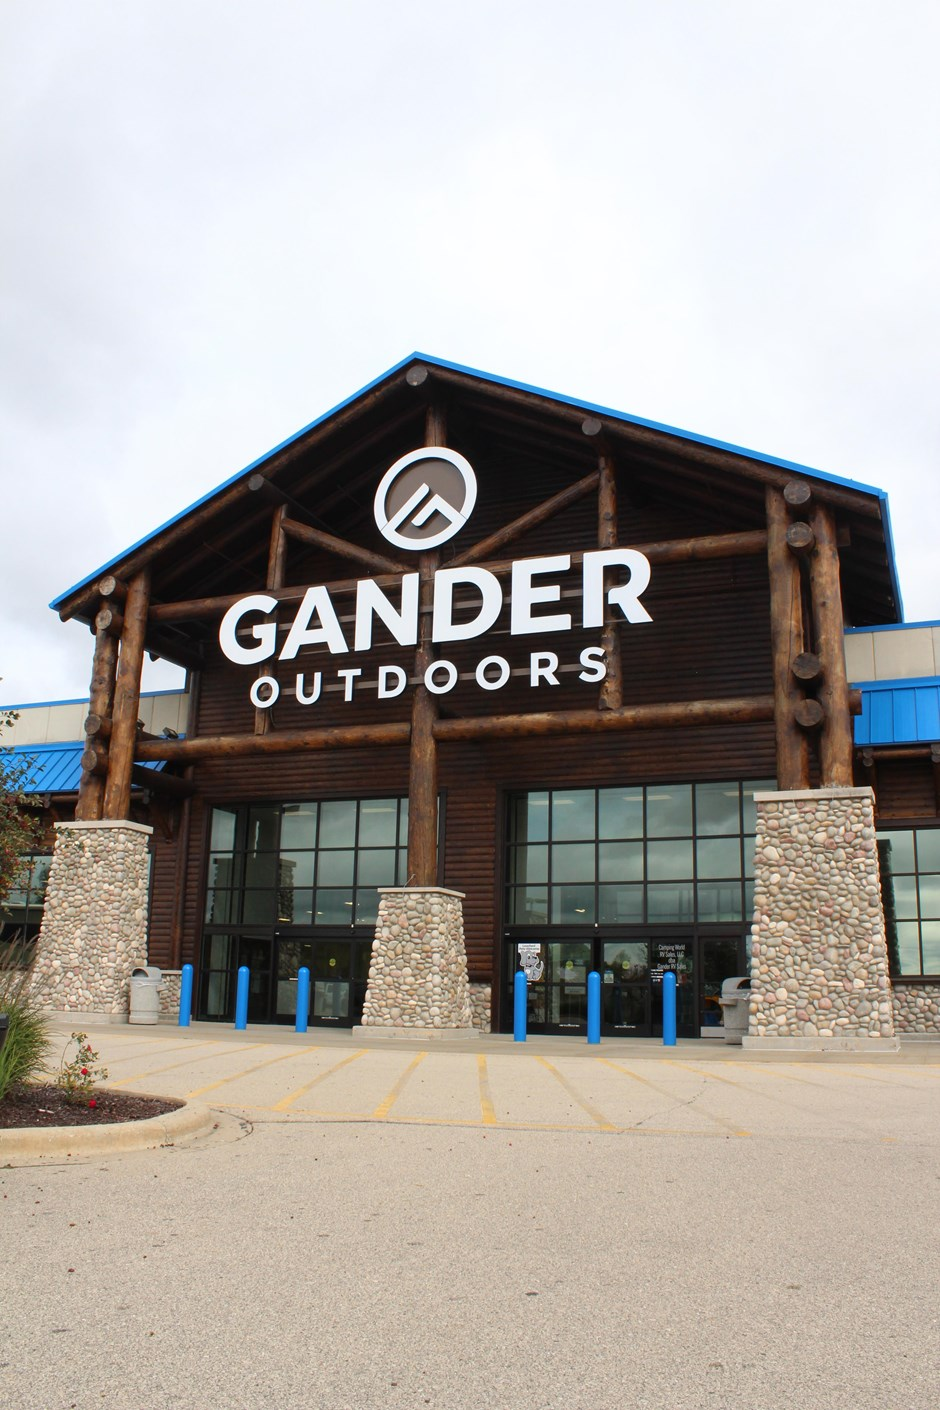 Optimized waste handling, performance and service monitoring led to Gander Outdoors going with Bramidan